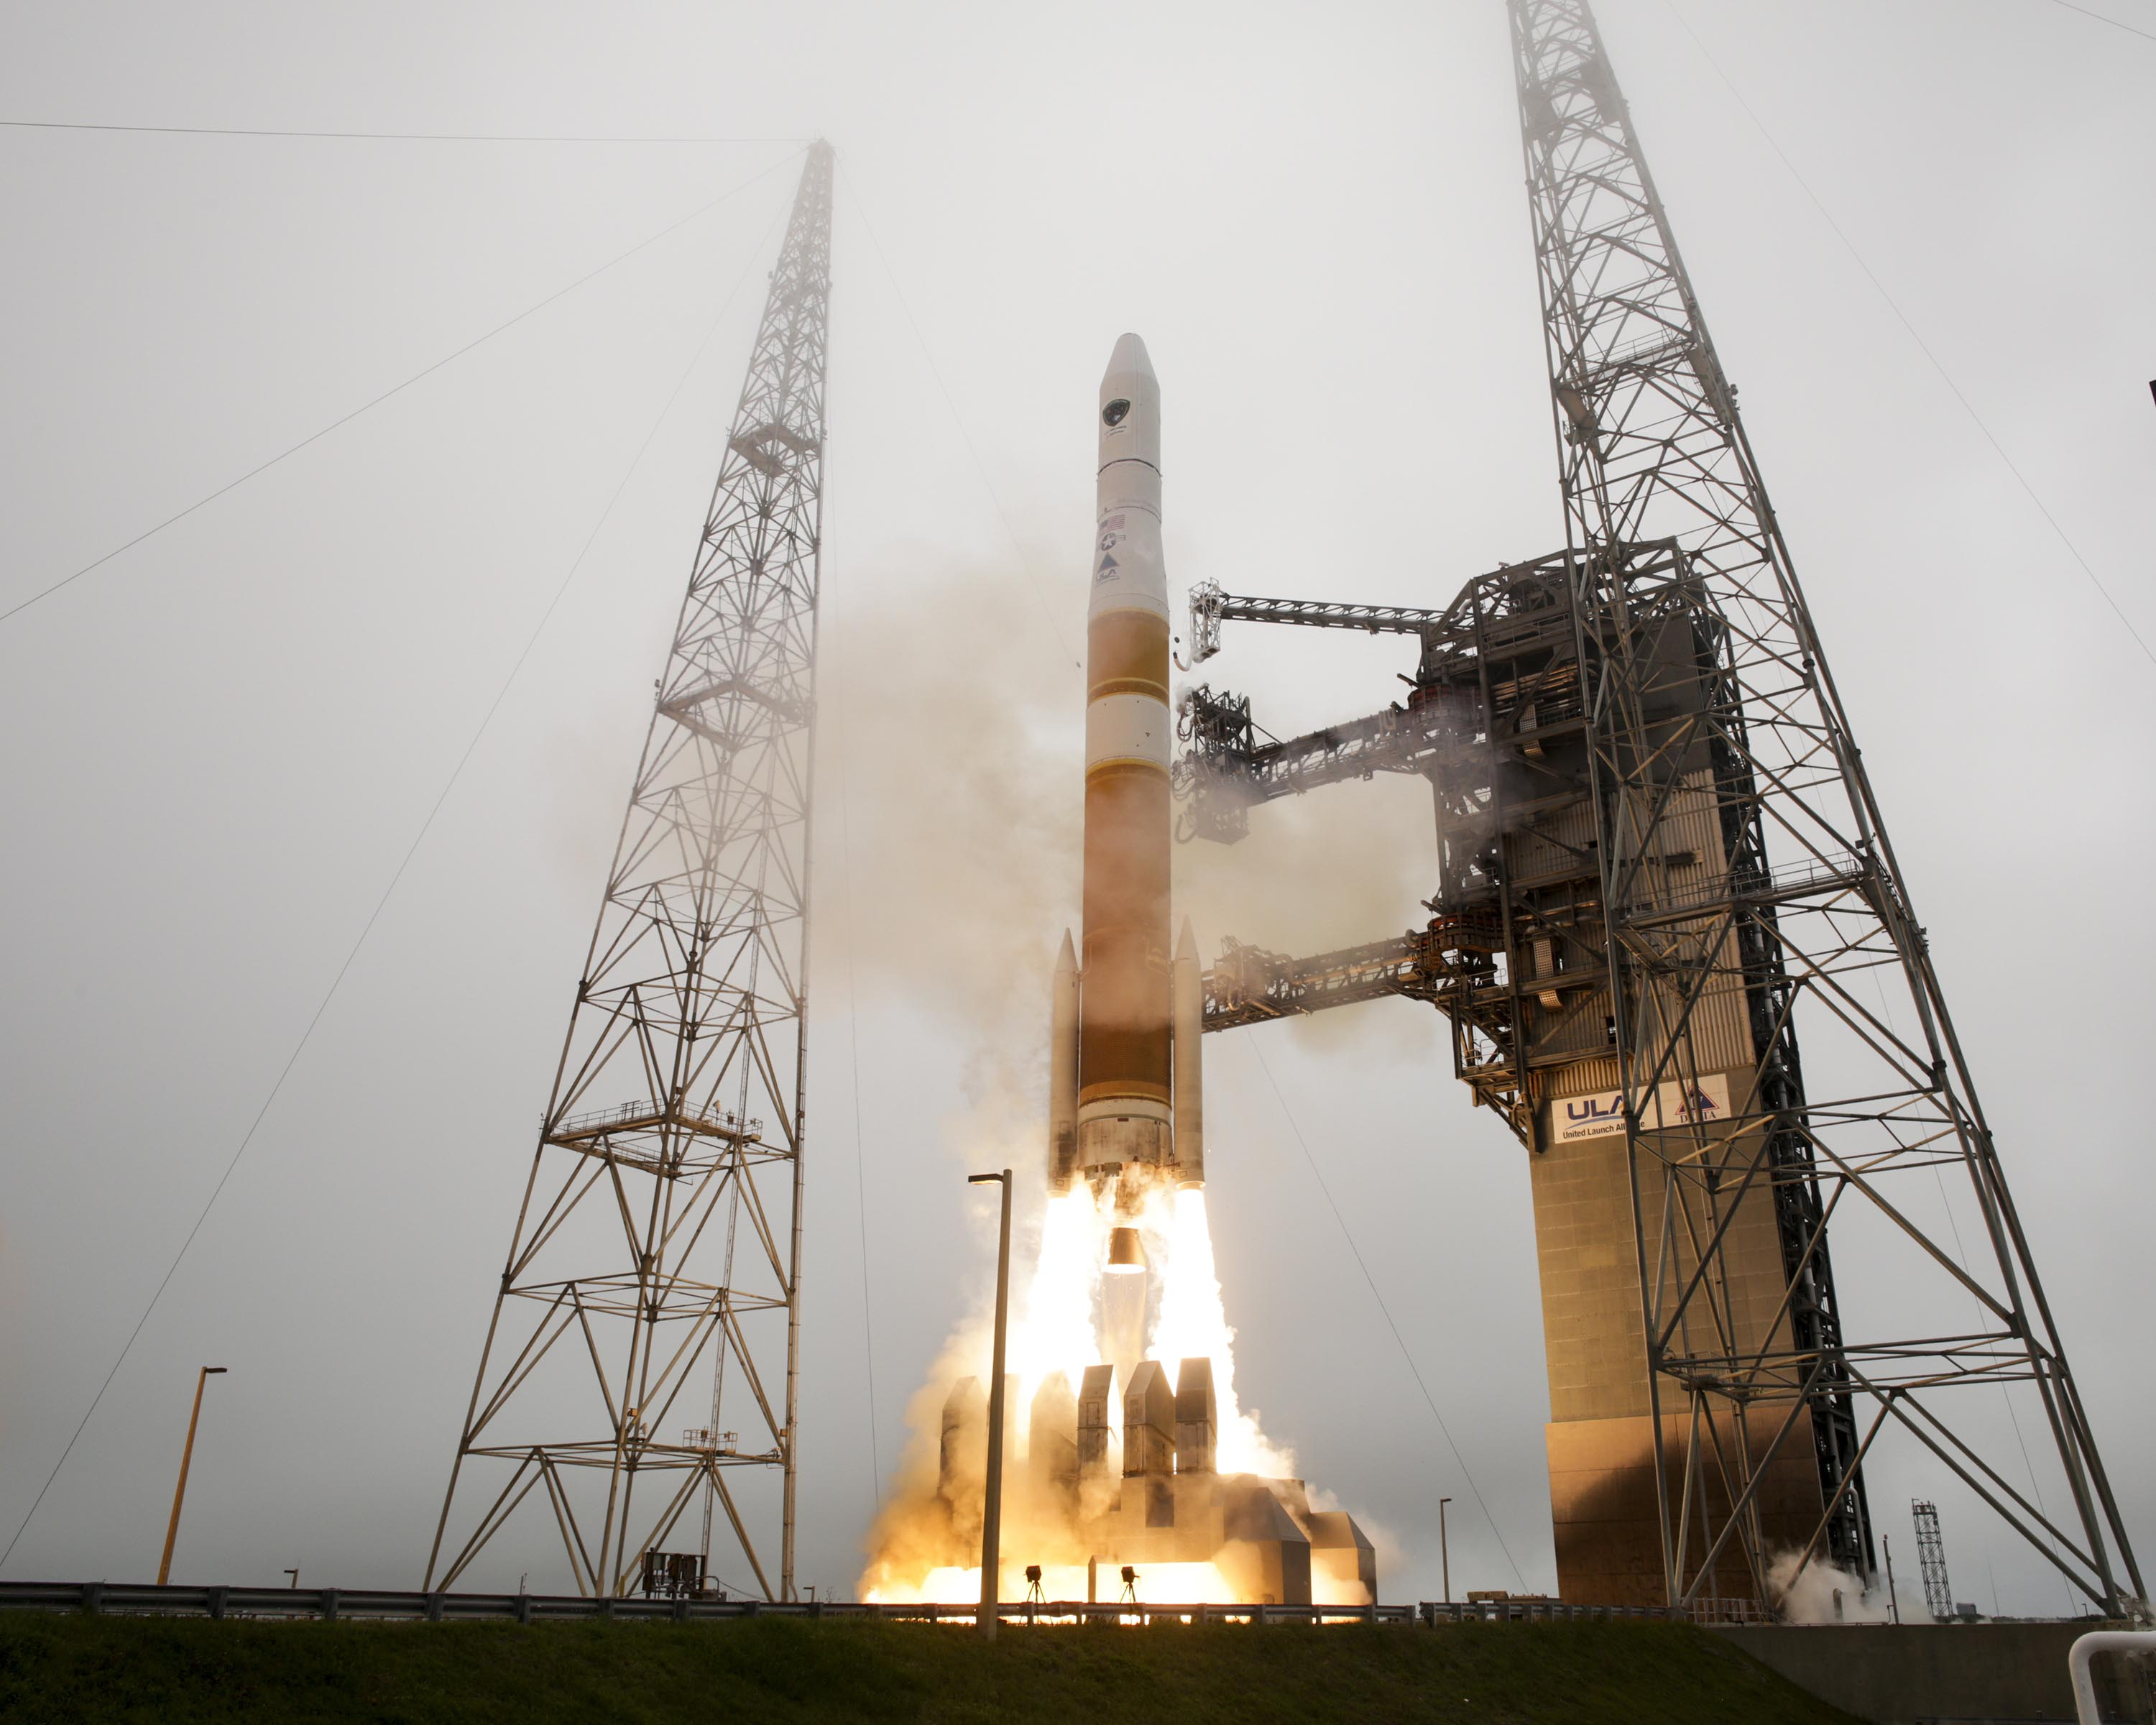 The U.S. Air Force's GPS IIF-9 satellite blasts off from Florida's Cape Canaveral Air Force Station atop a United Launch Alliance Delta 4 Heavy rocket on March 25, 2014.